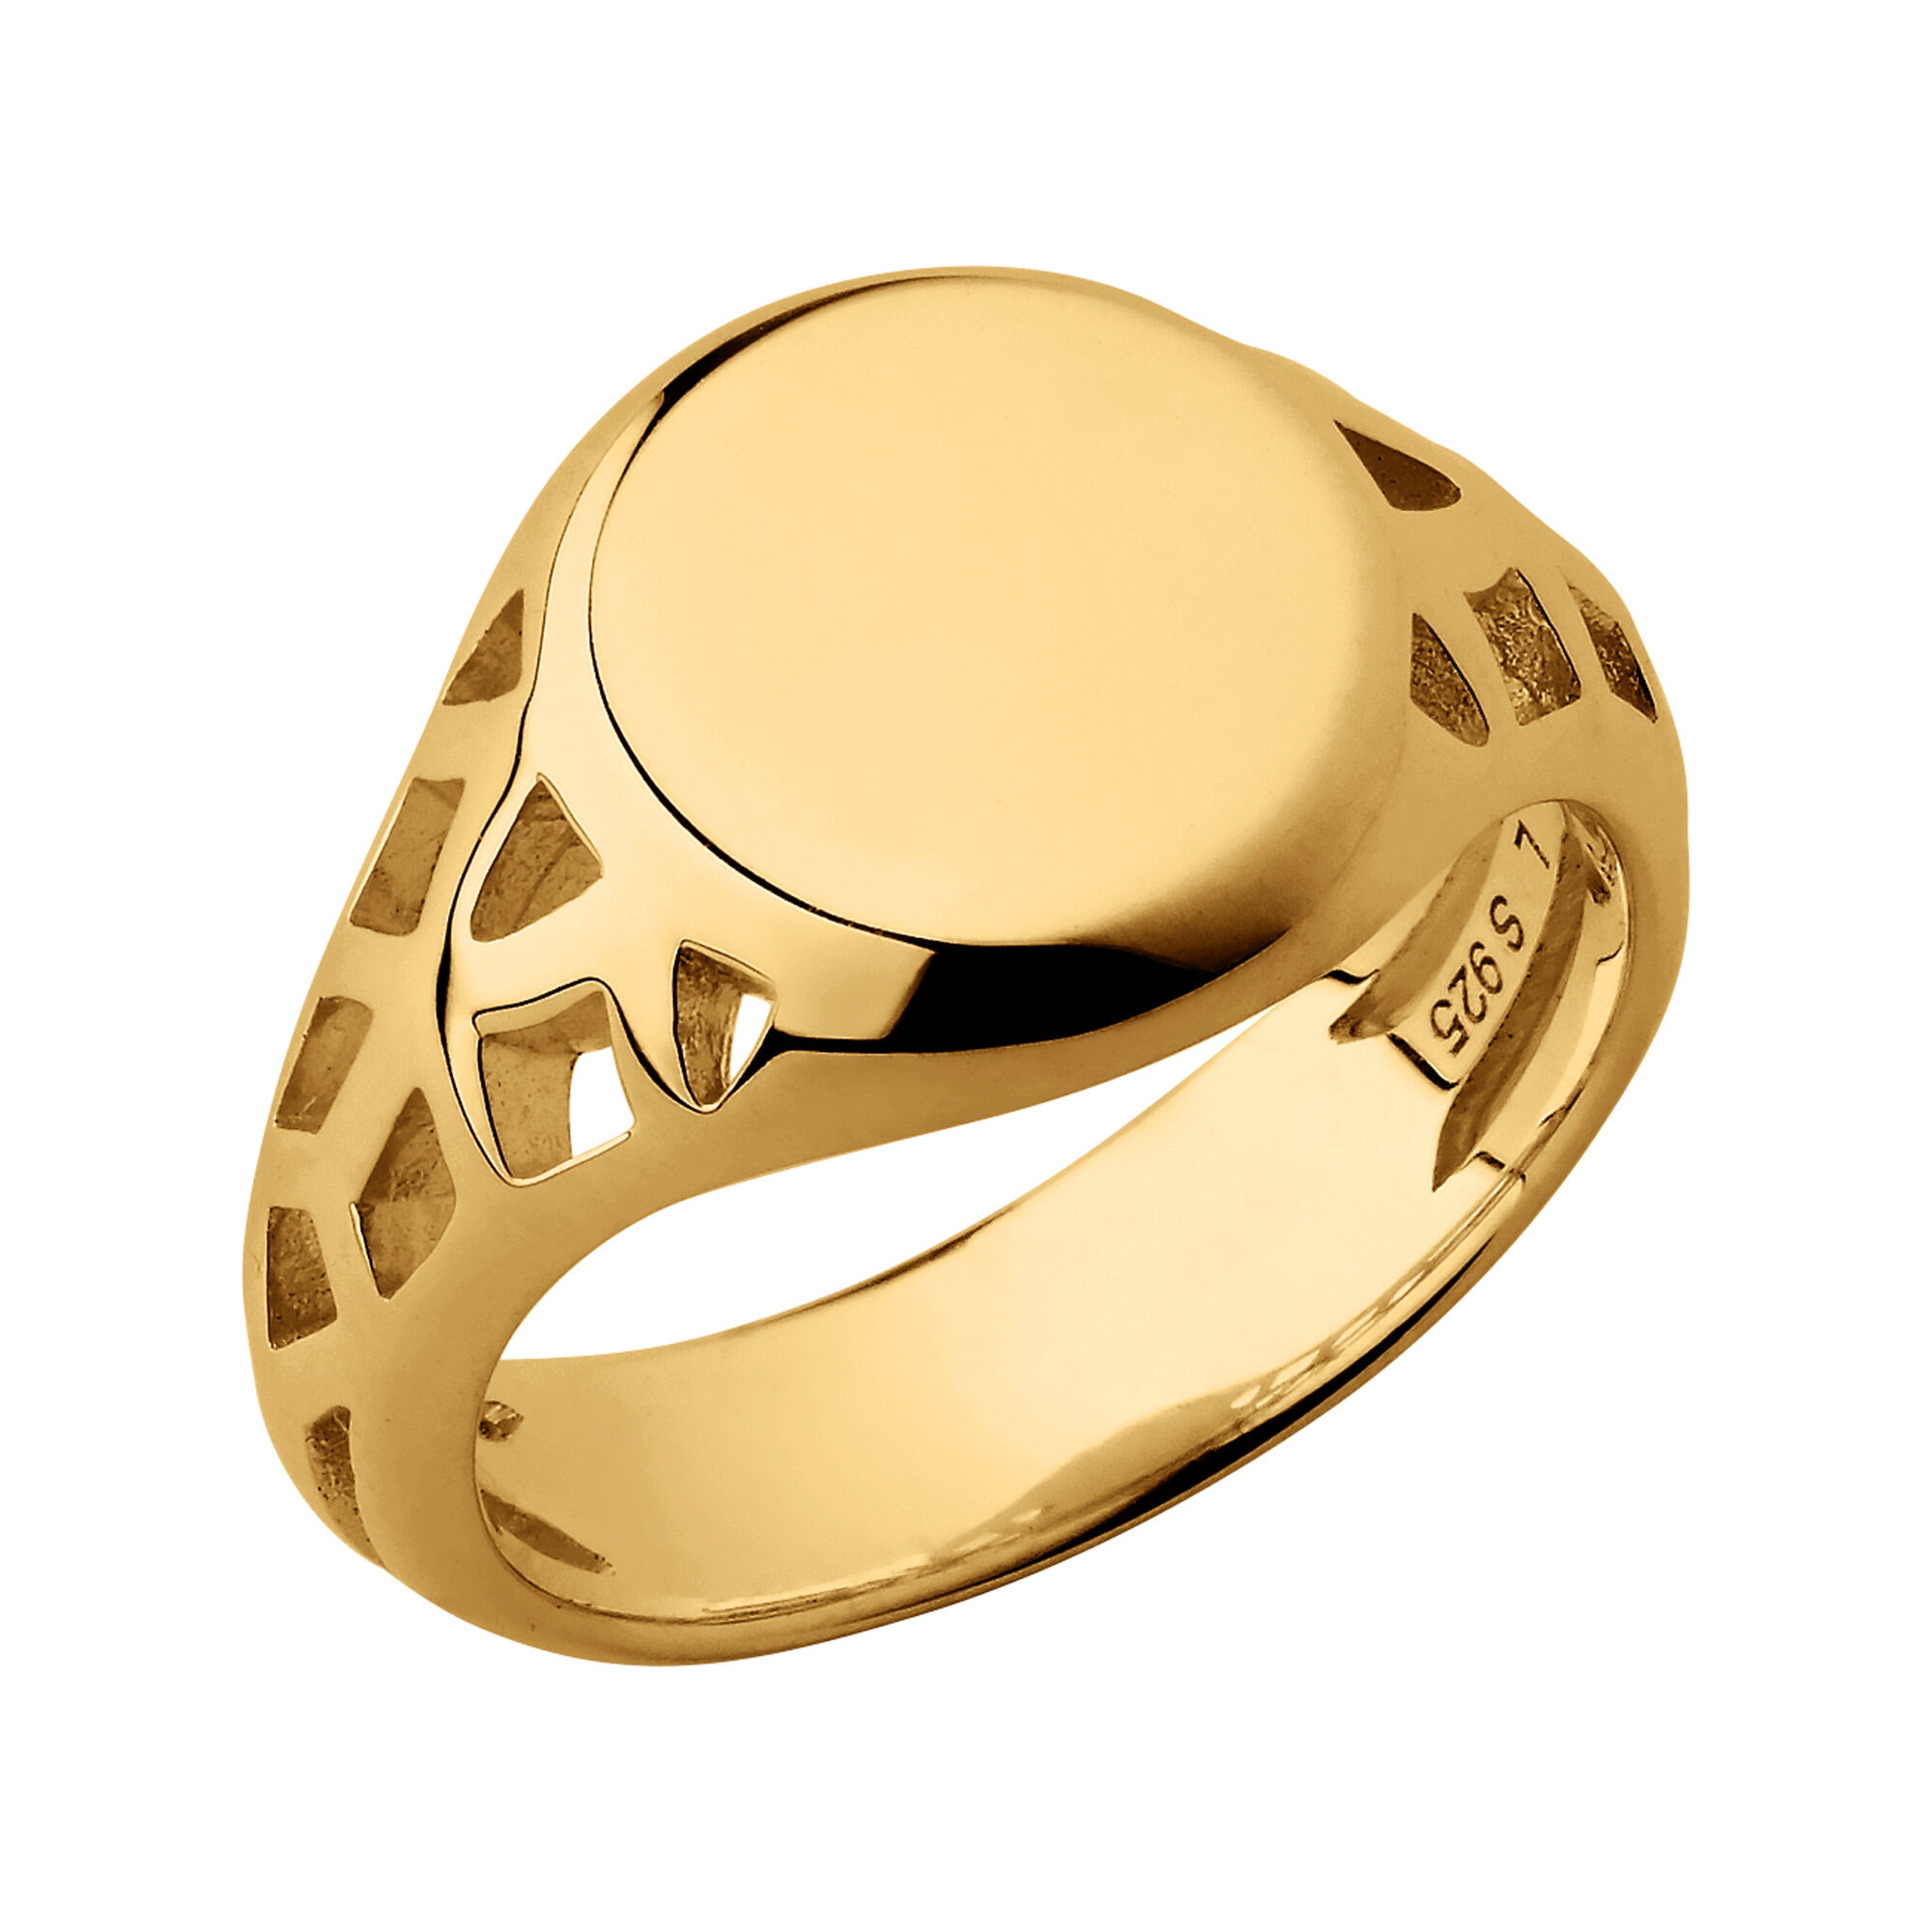 design for brands diamonds yellow ring just pure womens jewels gold heart with online lady jewellery women shop sale rings